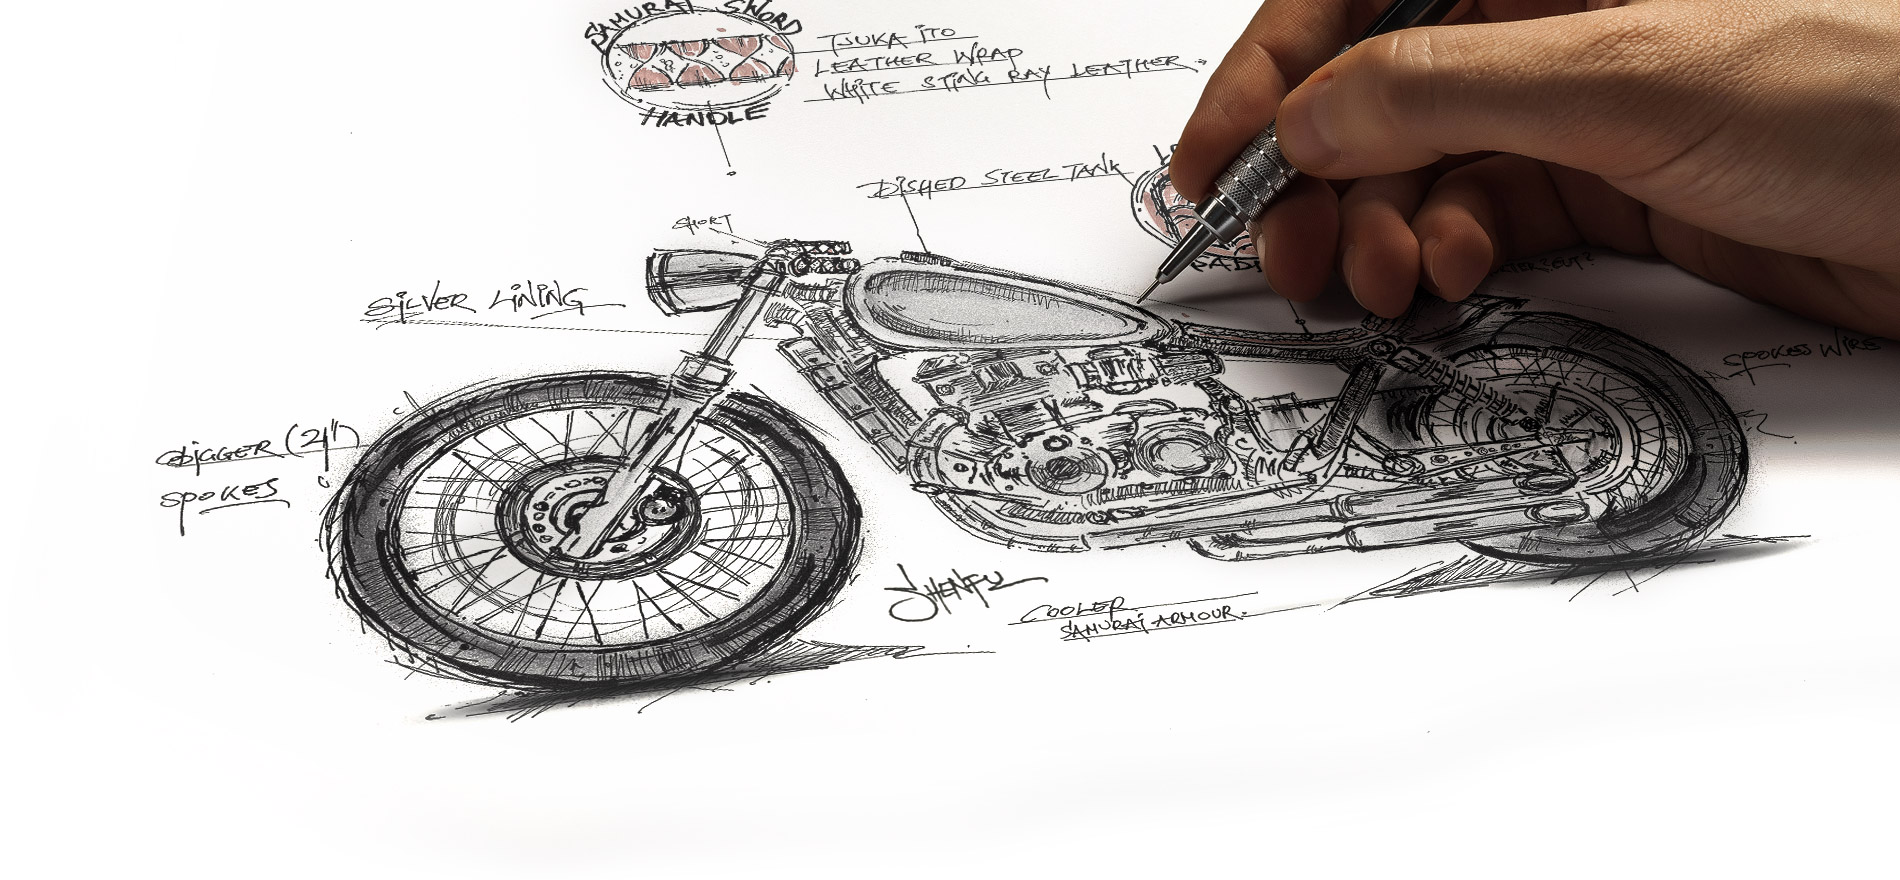 Titan_CustomBikes_CafeRacer_Austria-Atelier_SHENFU_Art-of-Custom-Bike-Concept-Design_Idea_Illustration_Digital_Artwork_Motorycle-Drawing-Artwork_doodle